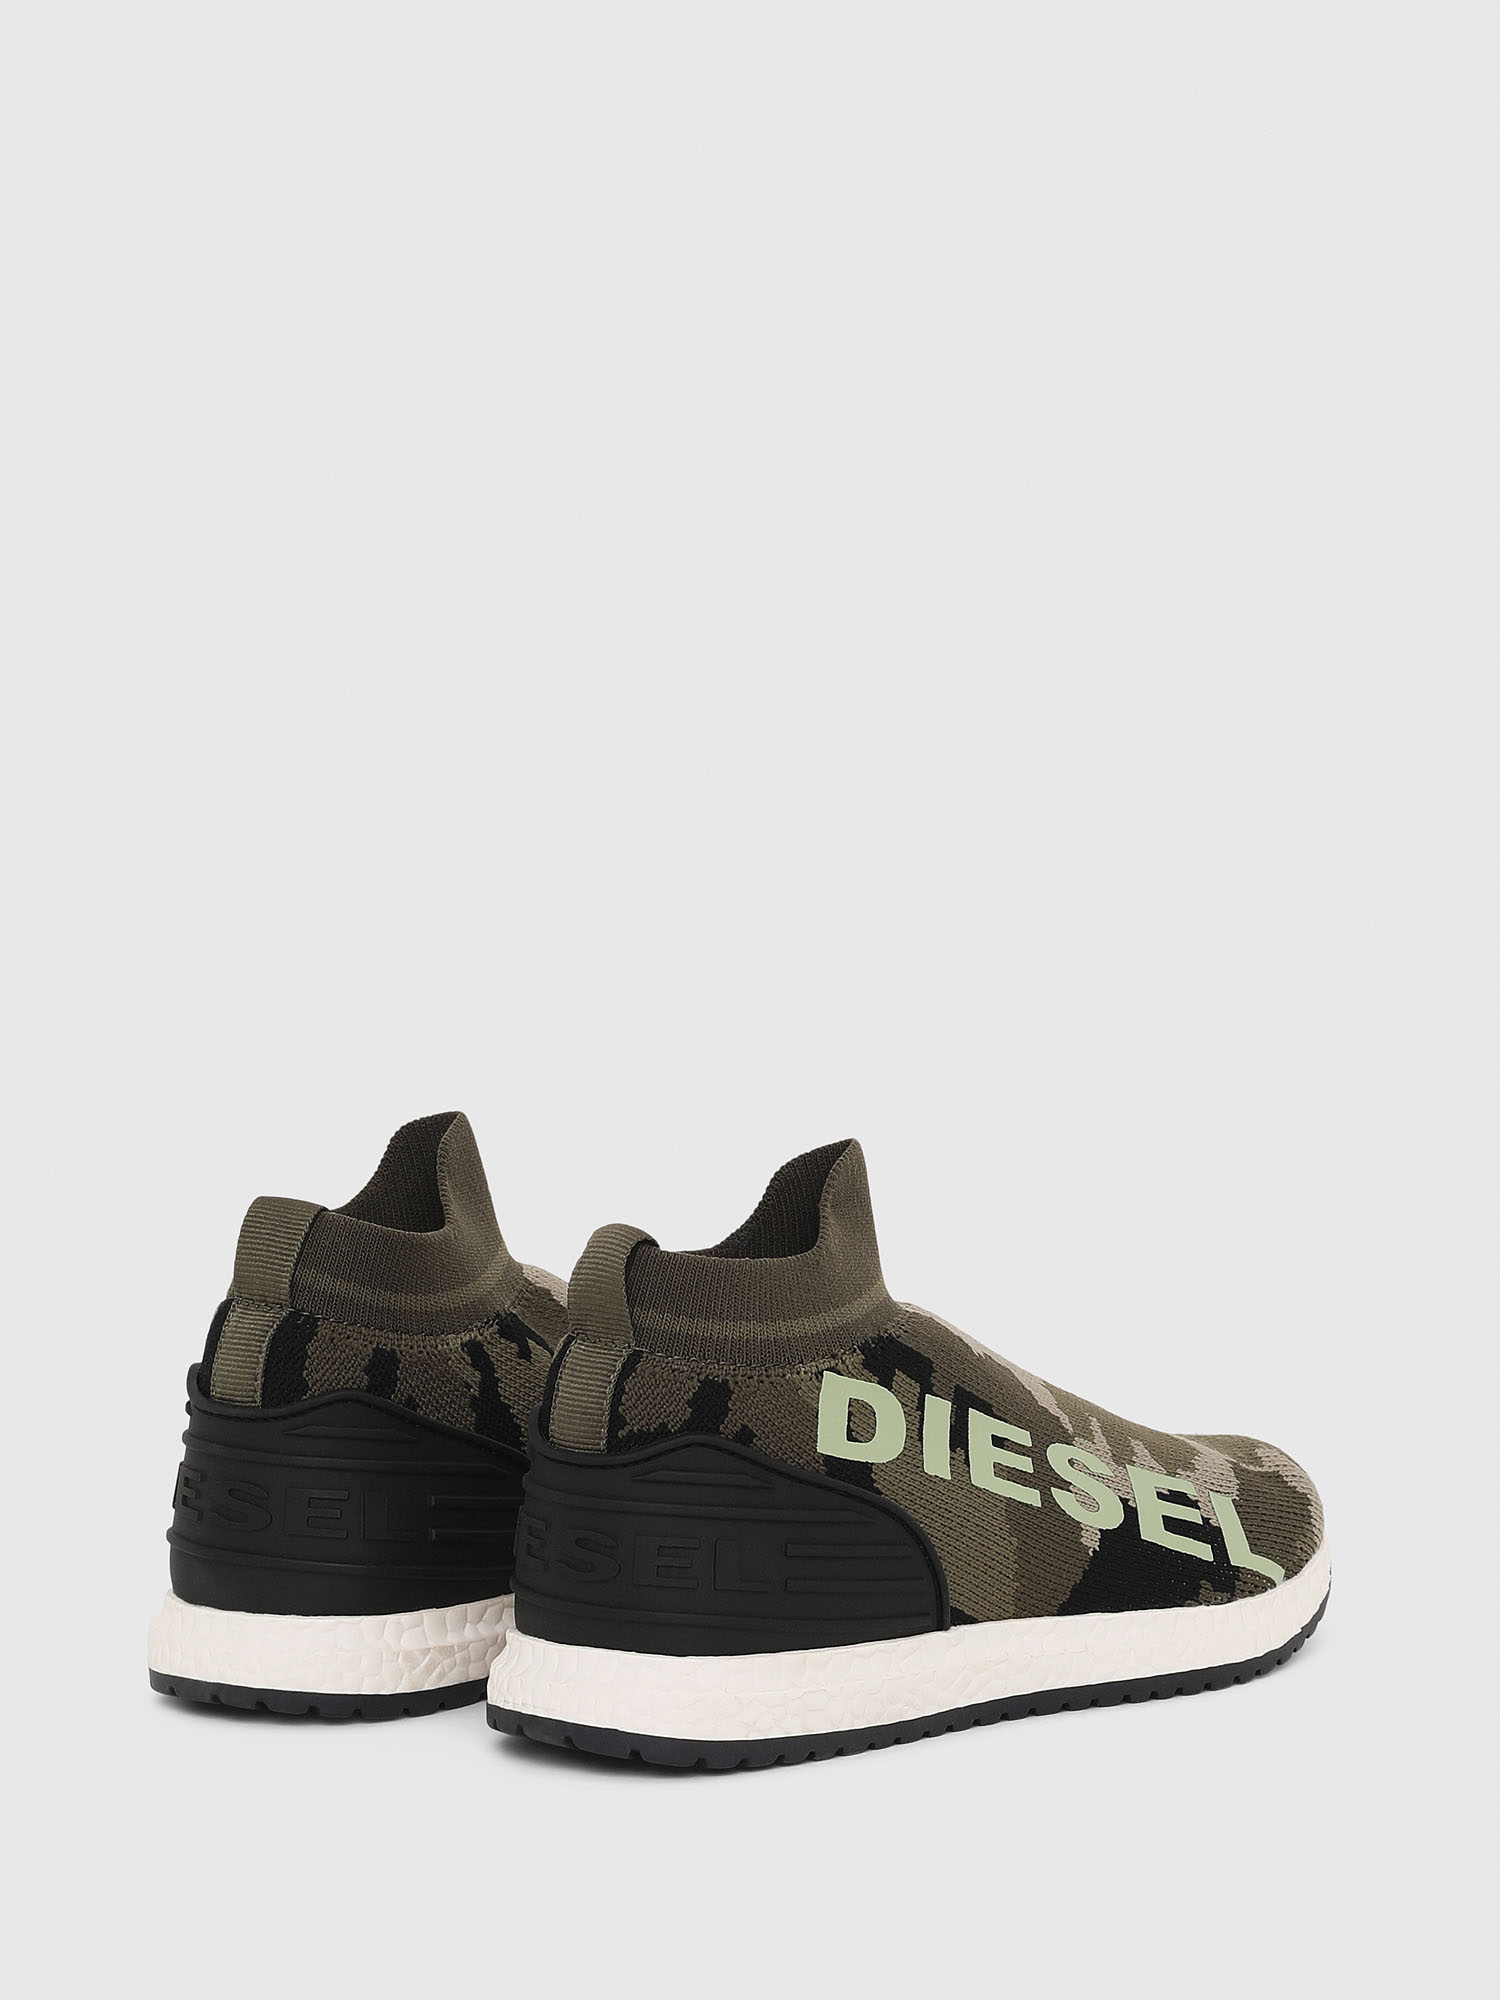 Diesel - SLIP ON 03 LOW SOCK,  - Scarpe - Image 3